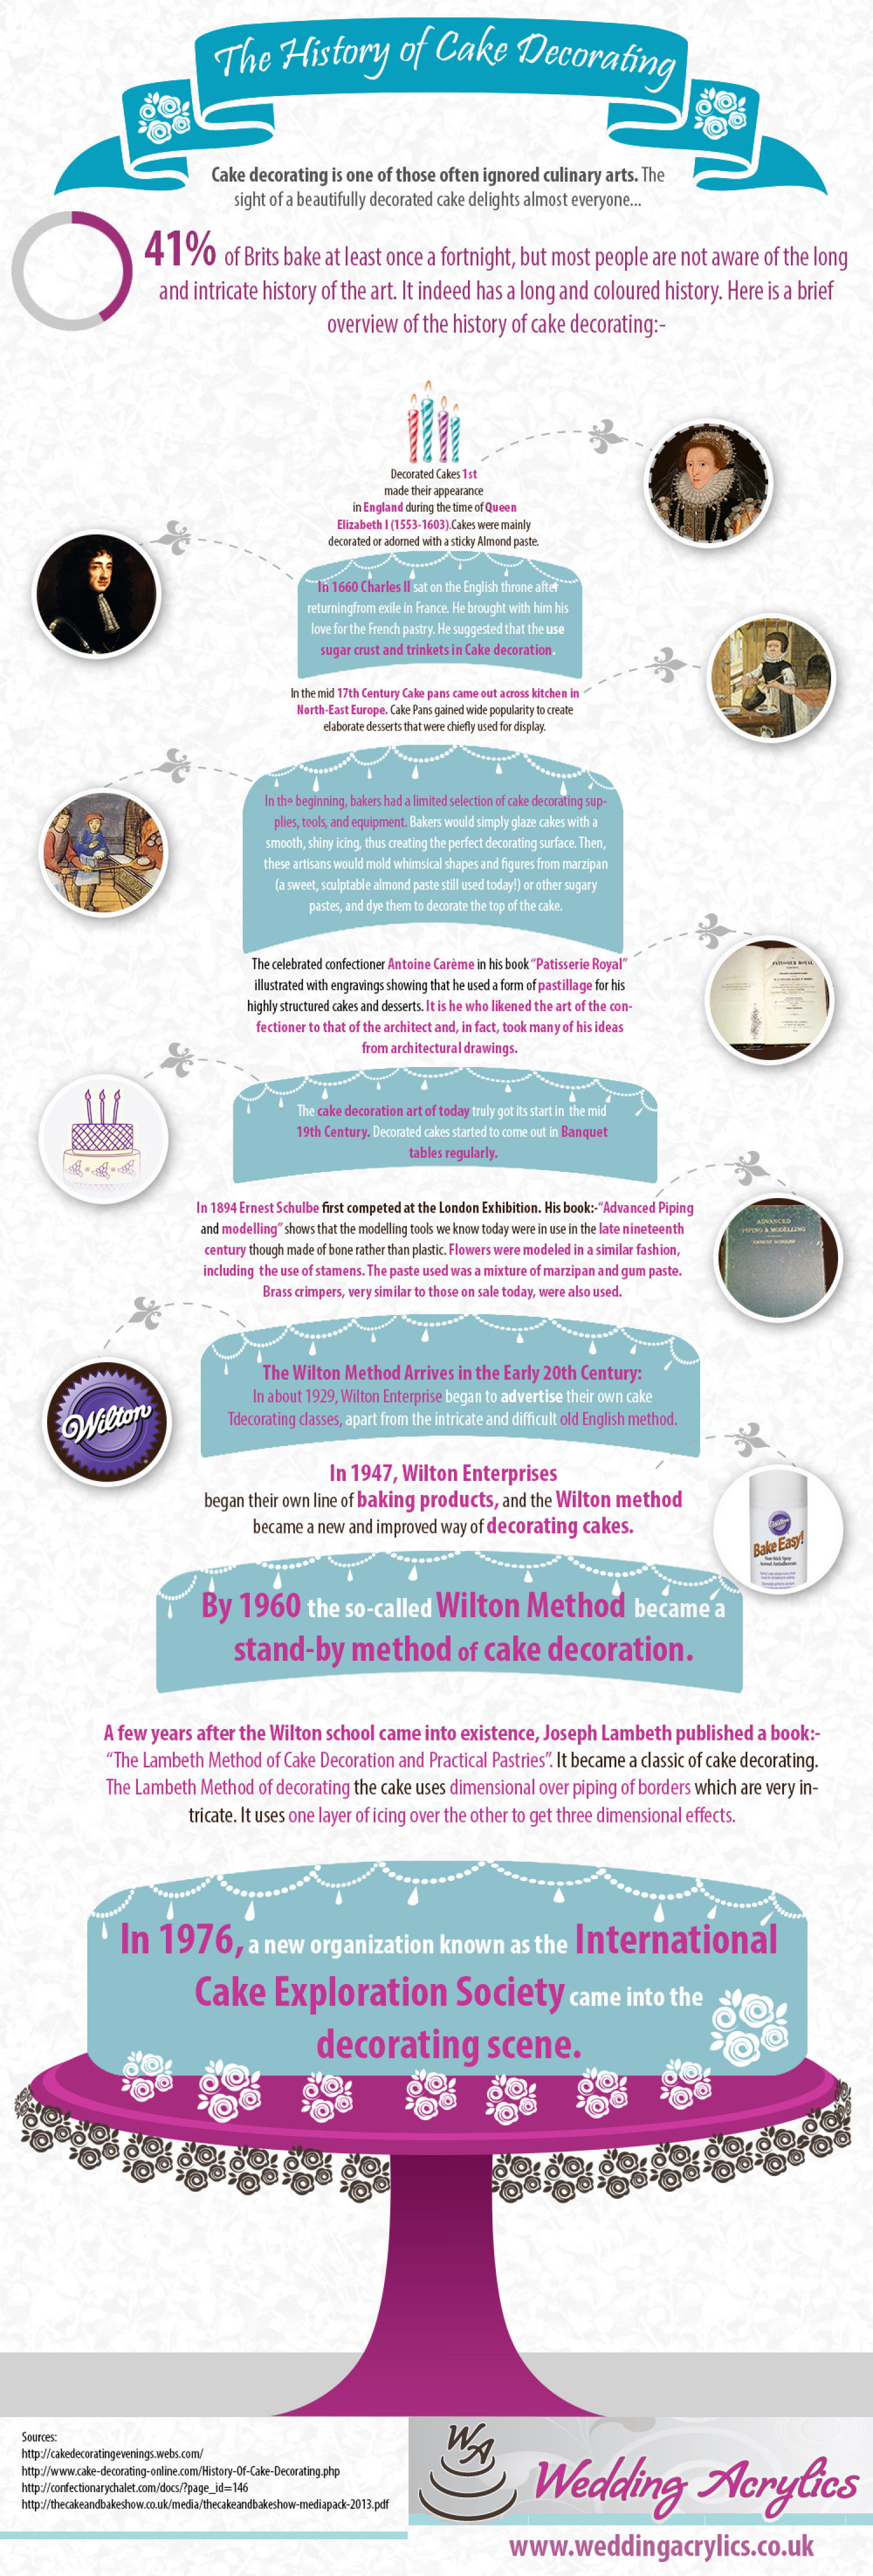 The History of Cake Decorating